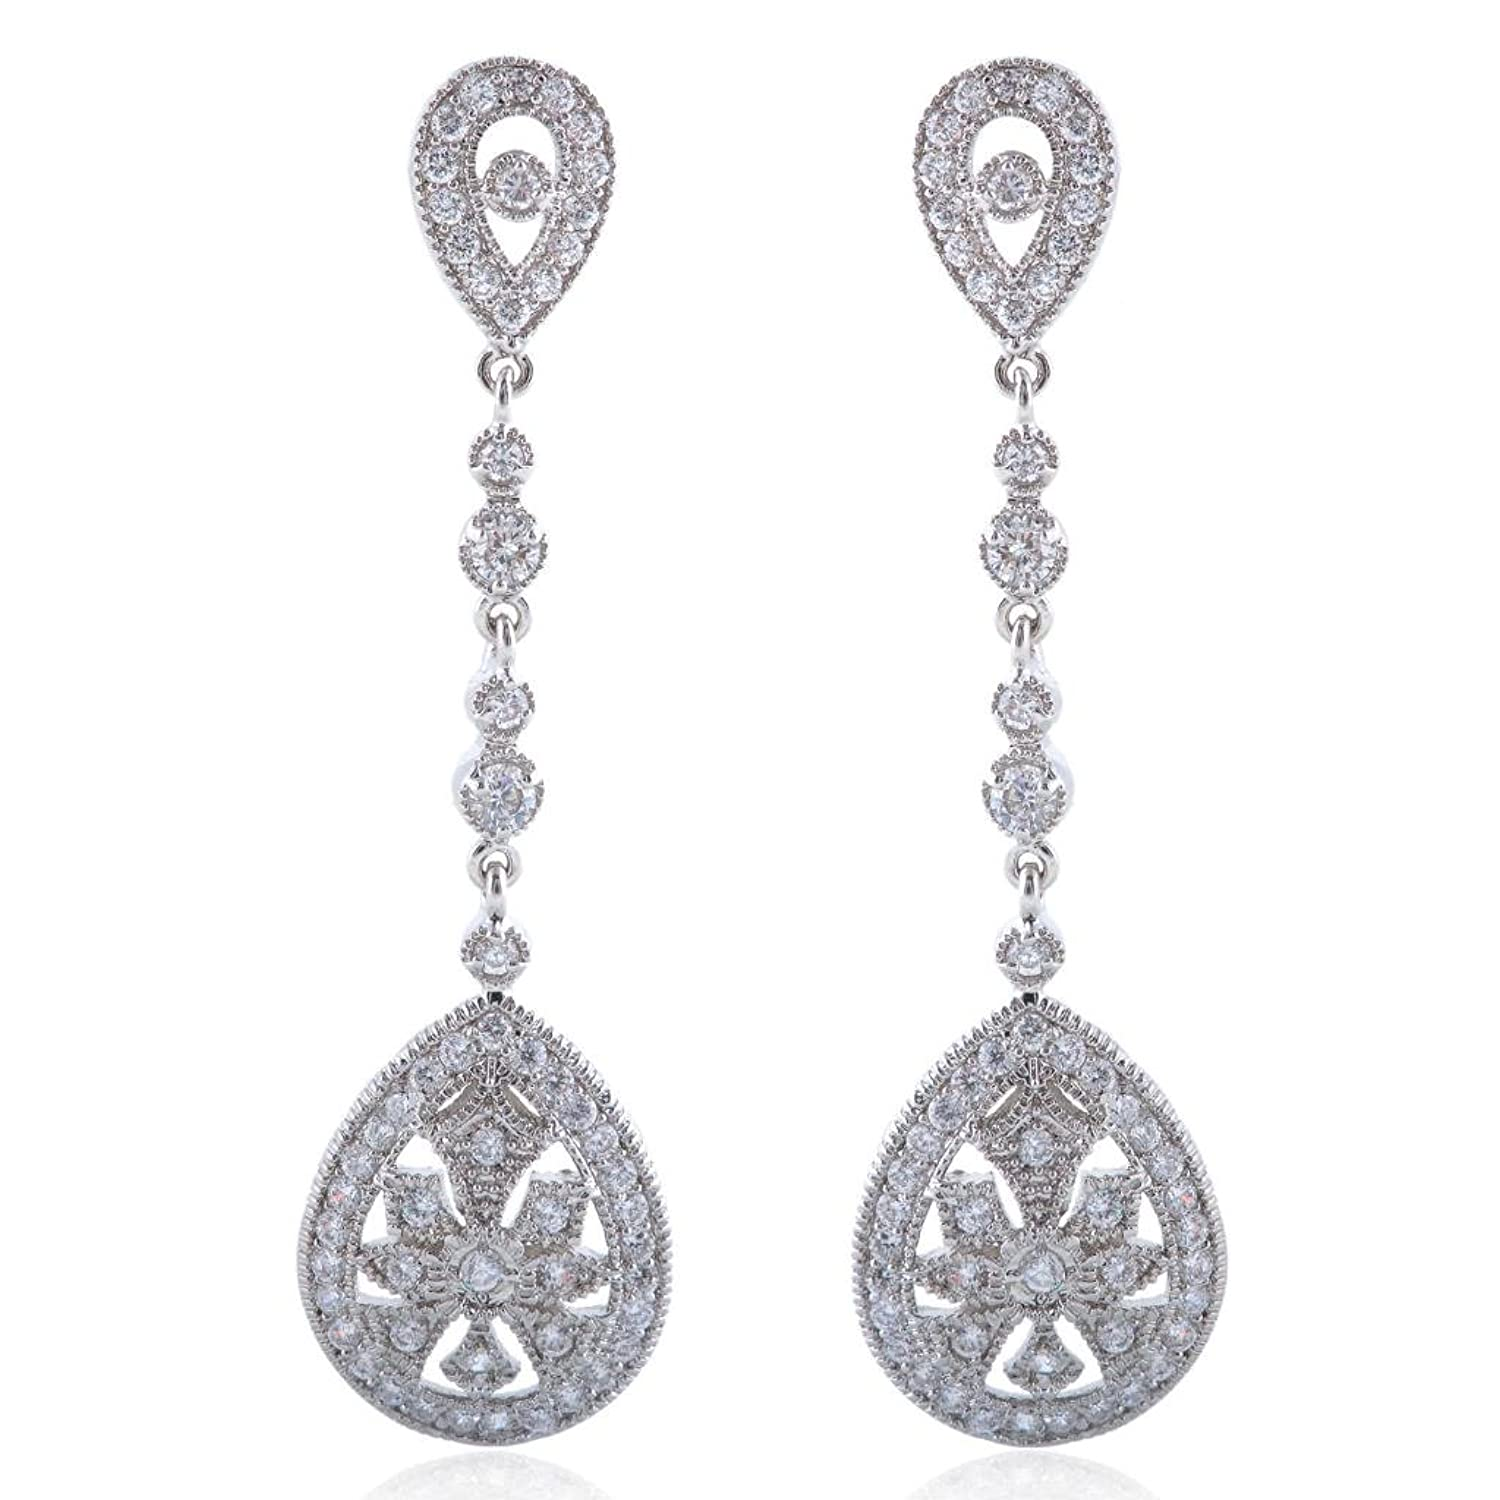 EVER FAITH Art Deco Classical Gatsby Inspired Pave CZ Chandelier – Cz Chandelier Earrings